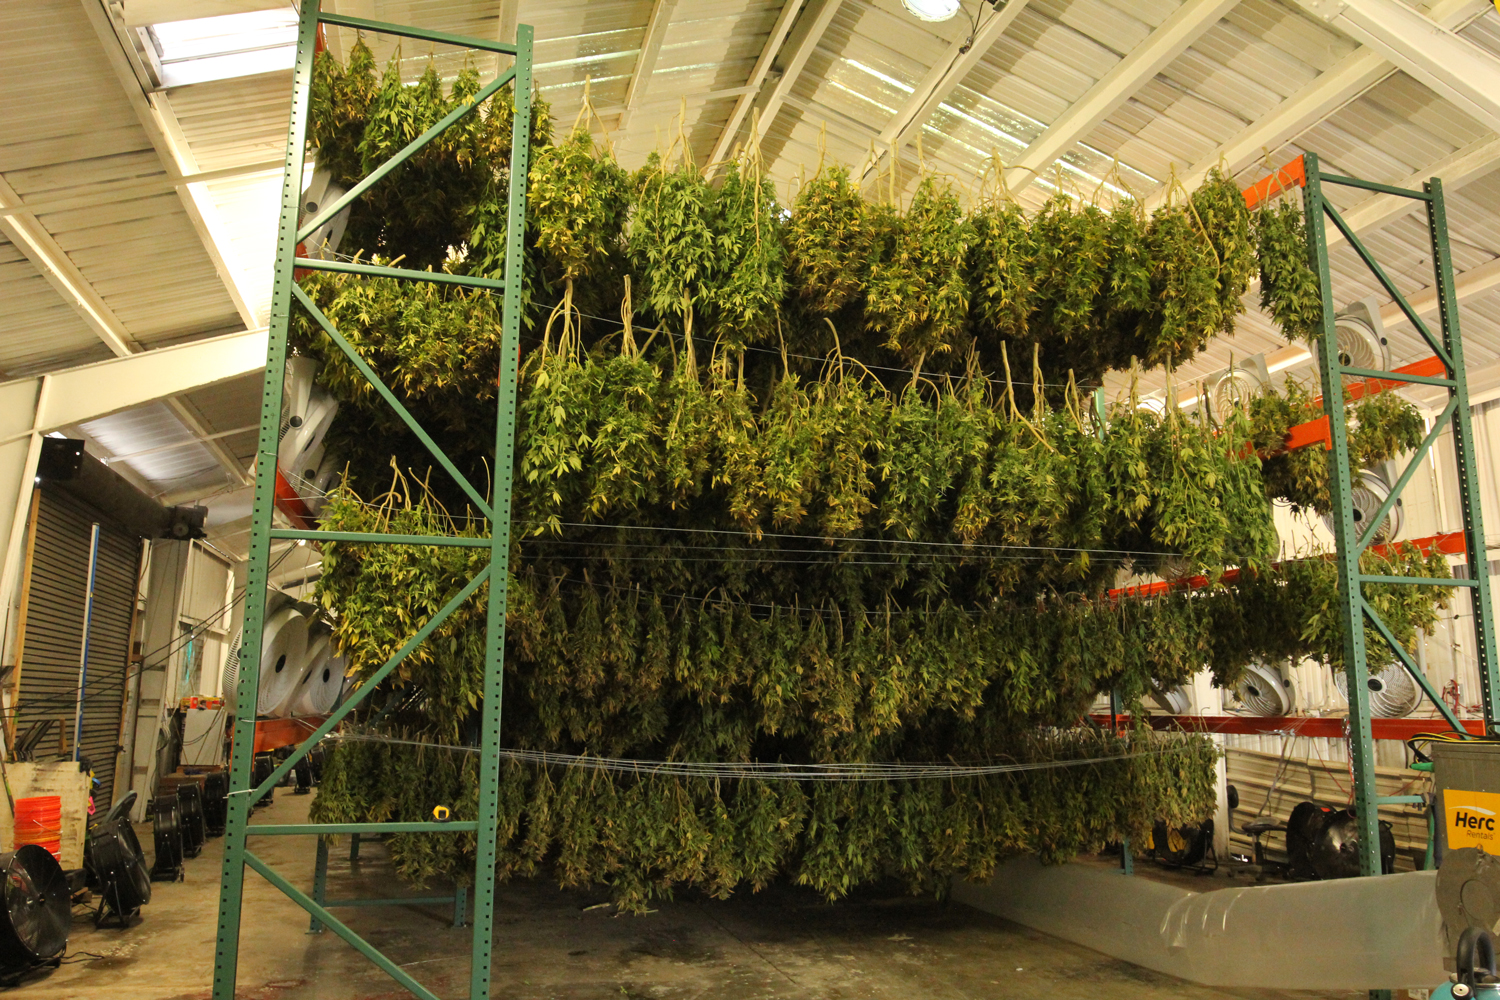 A massive cannabis drying rack is filled, with a battery of fans on each side to help the cannabis dry.